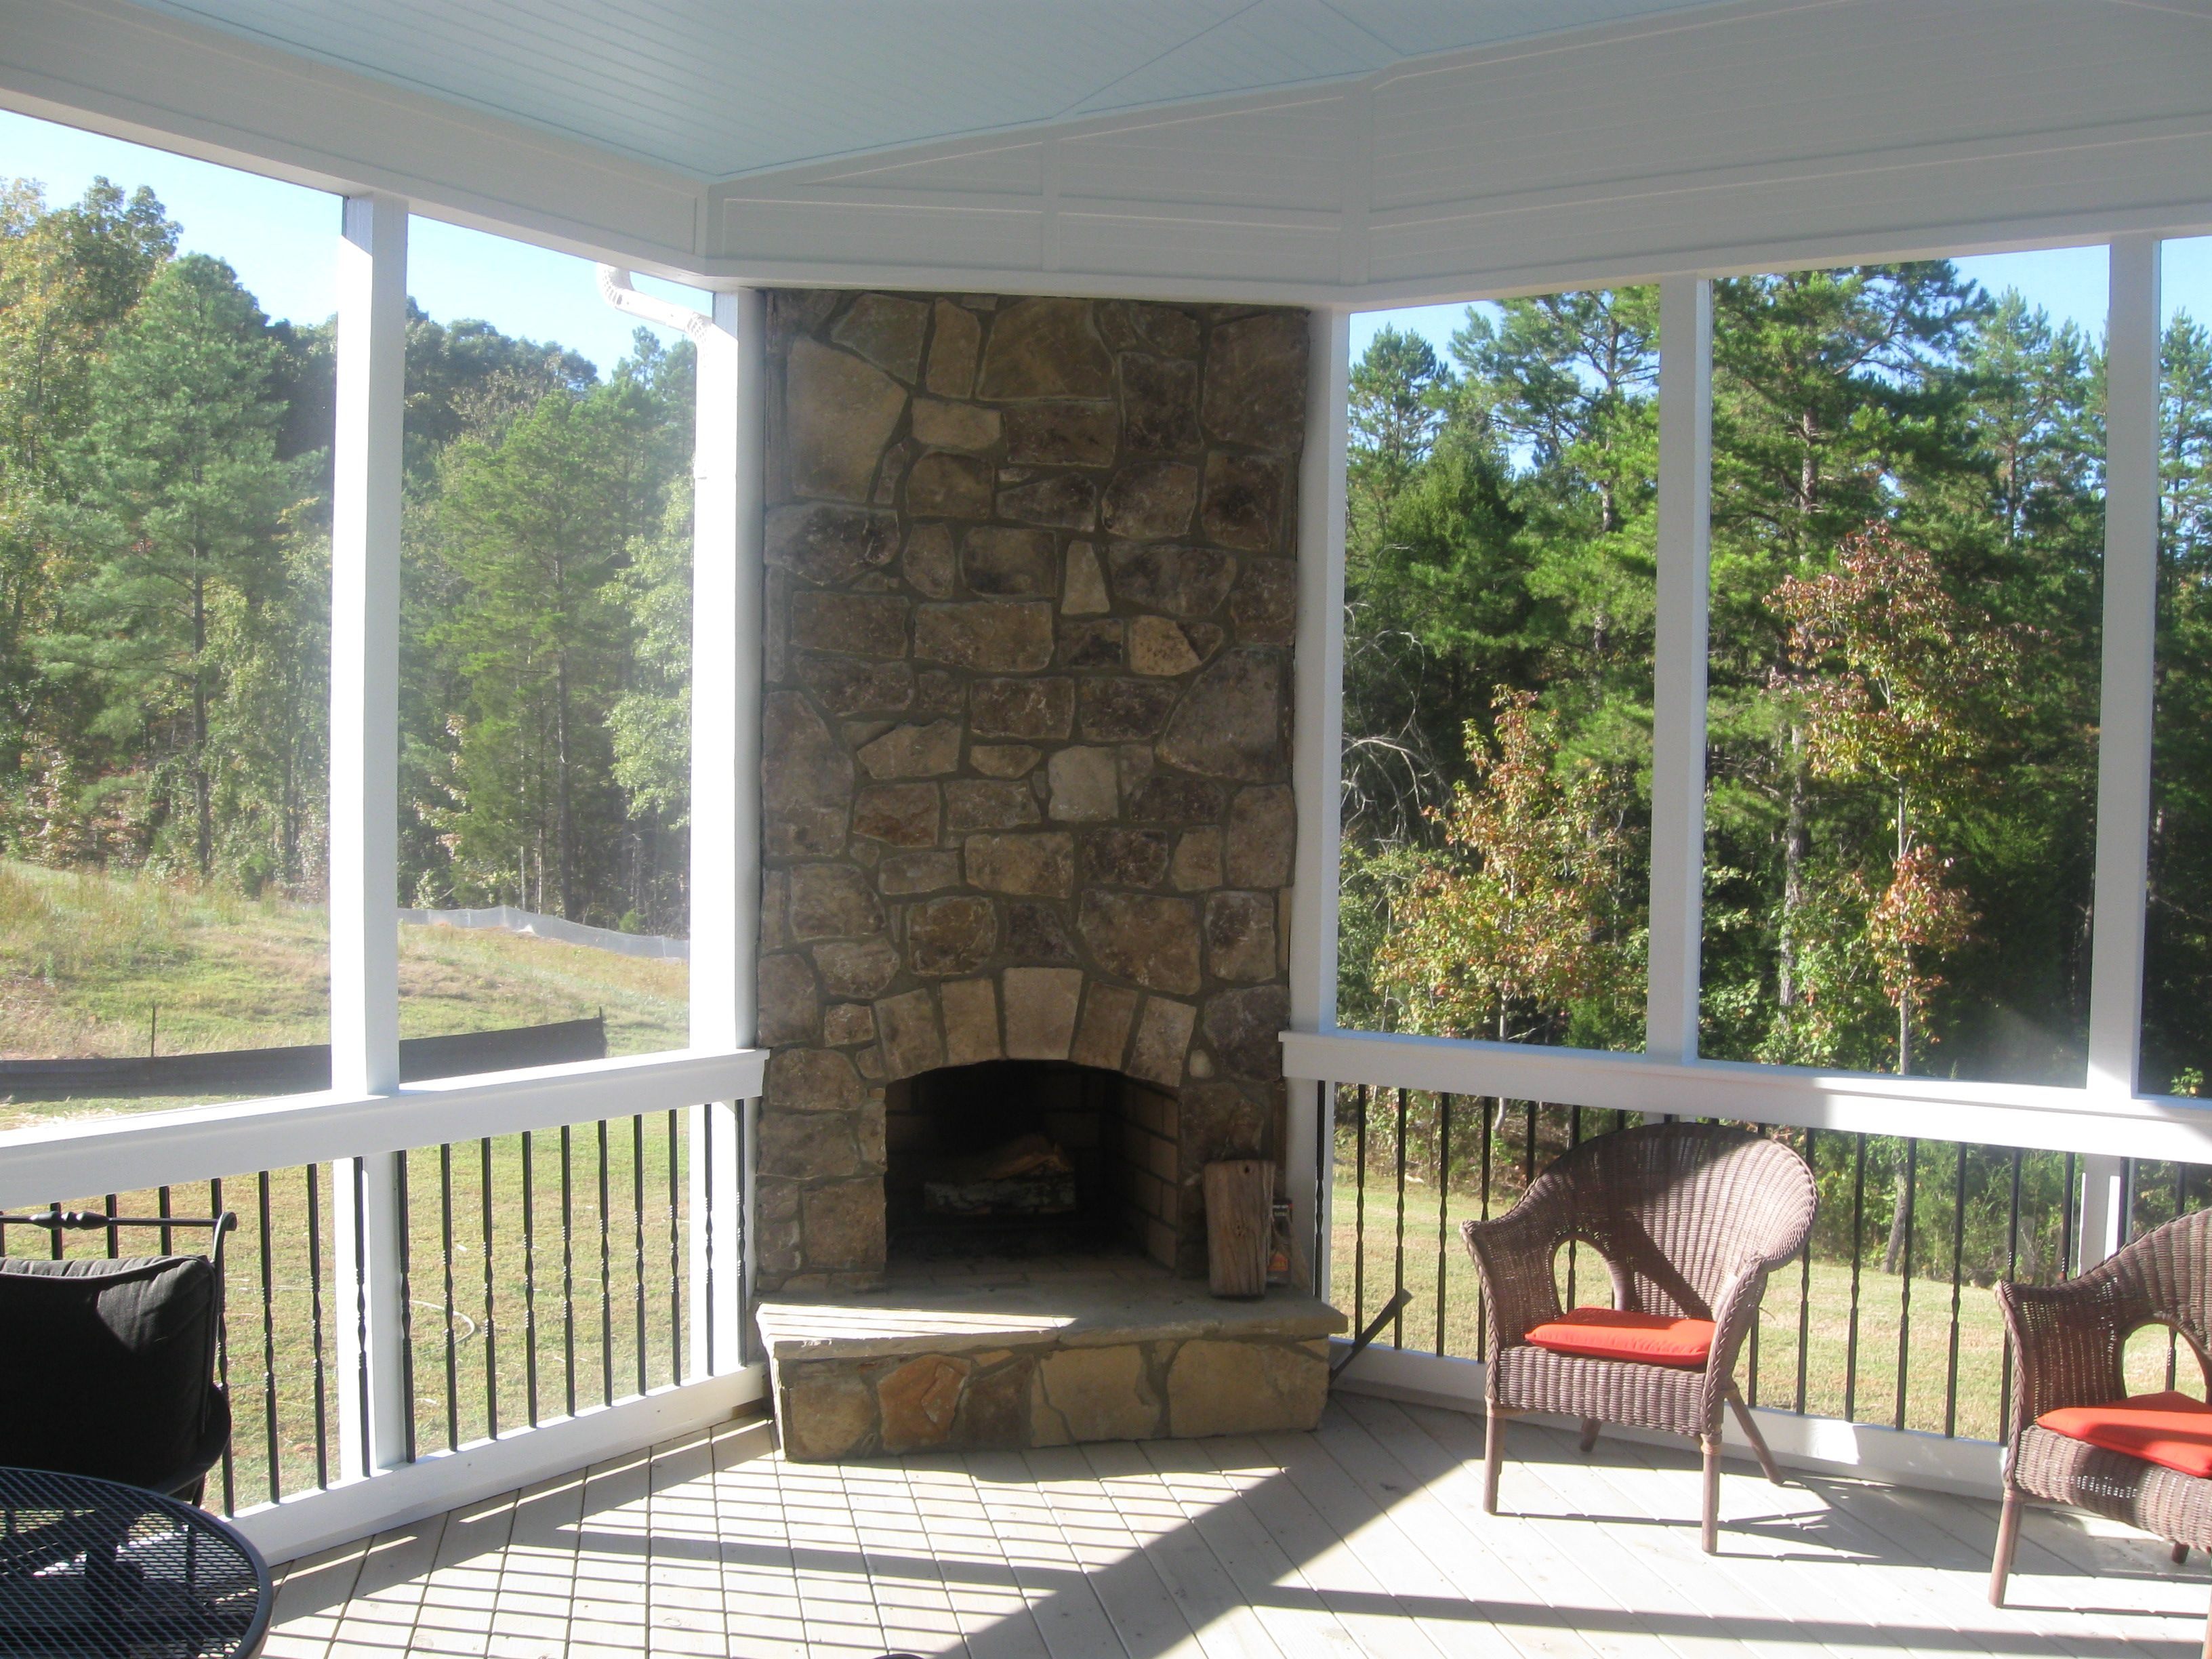 screened in porch ideas outdoor fireplace integrated into your screen porch - Screen Porch Ideas Designs